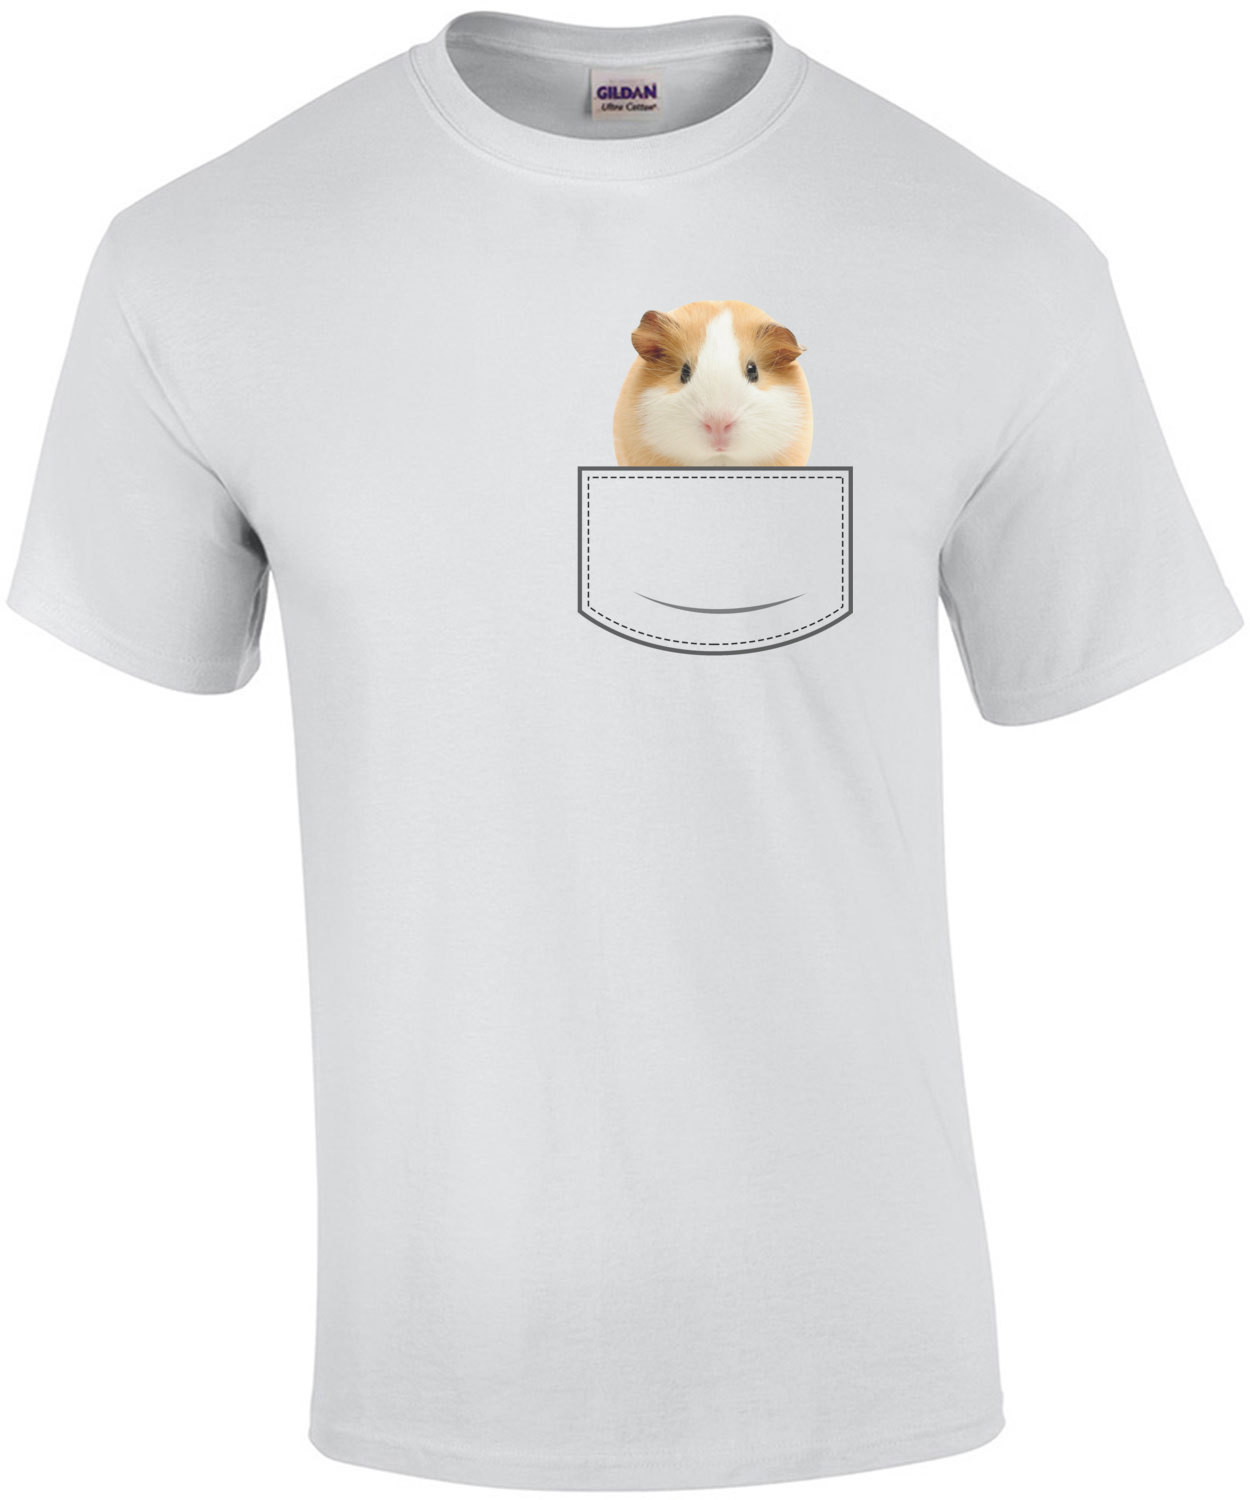 Guinea Pig in pocket - pocket pet t-shirt